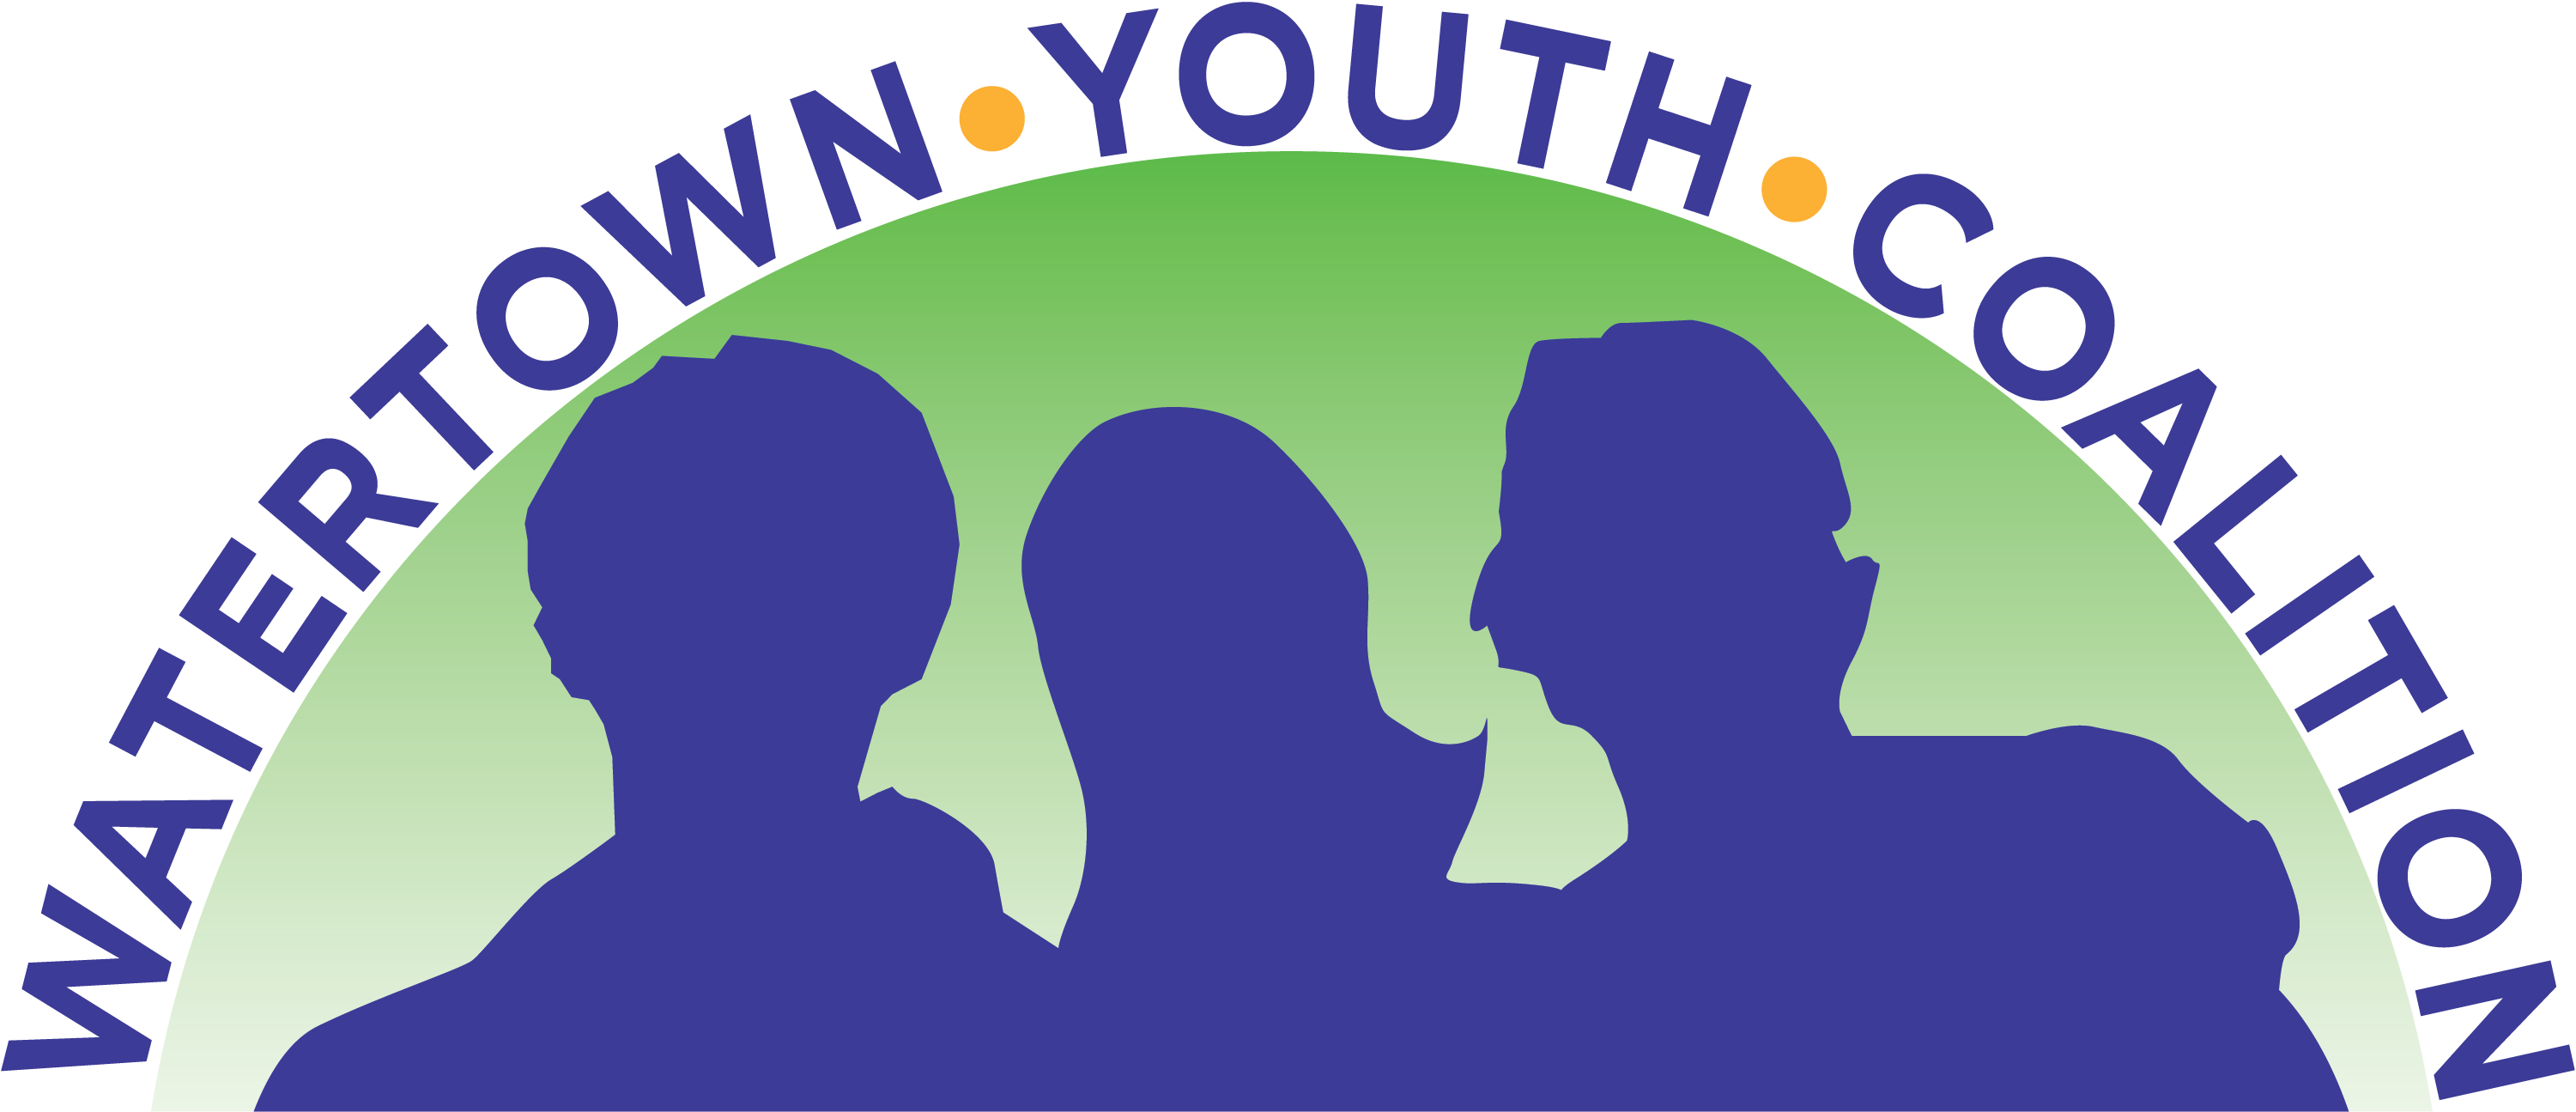 Watertown Youth Coalition